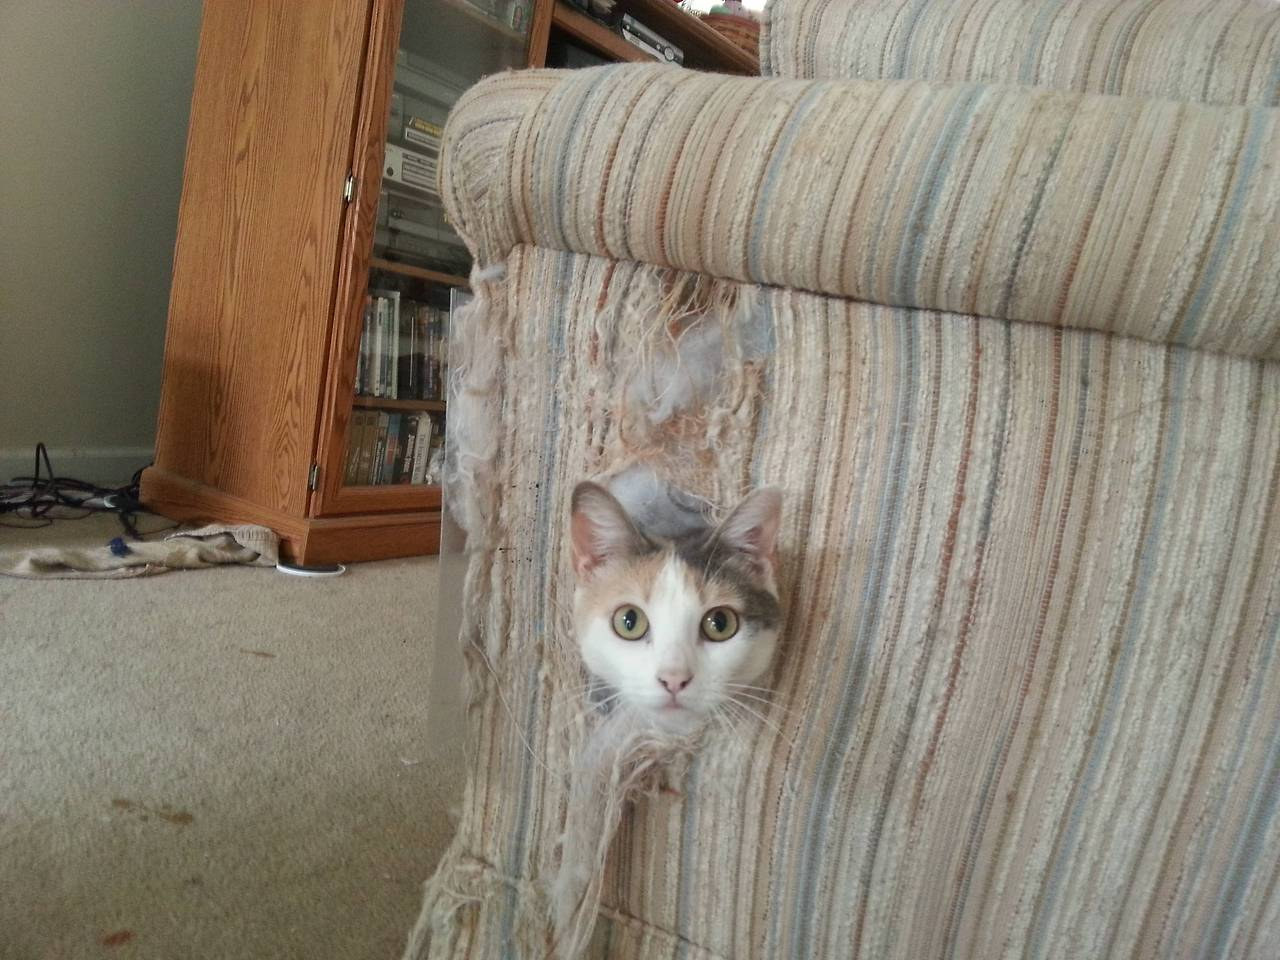 Dr Futonberg S Product Recommendations Futons Sofa Beds How To Prevent Cats From Scratching And Destroying Your Couch